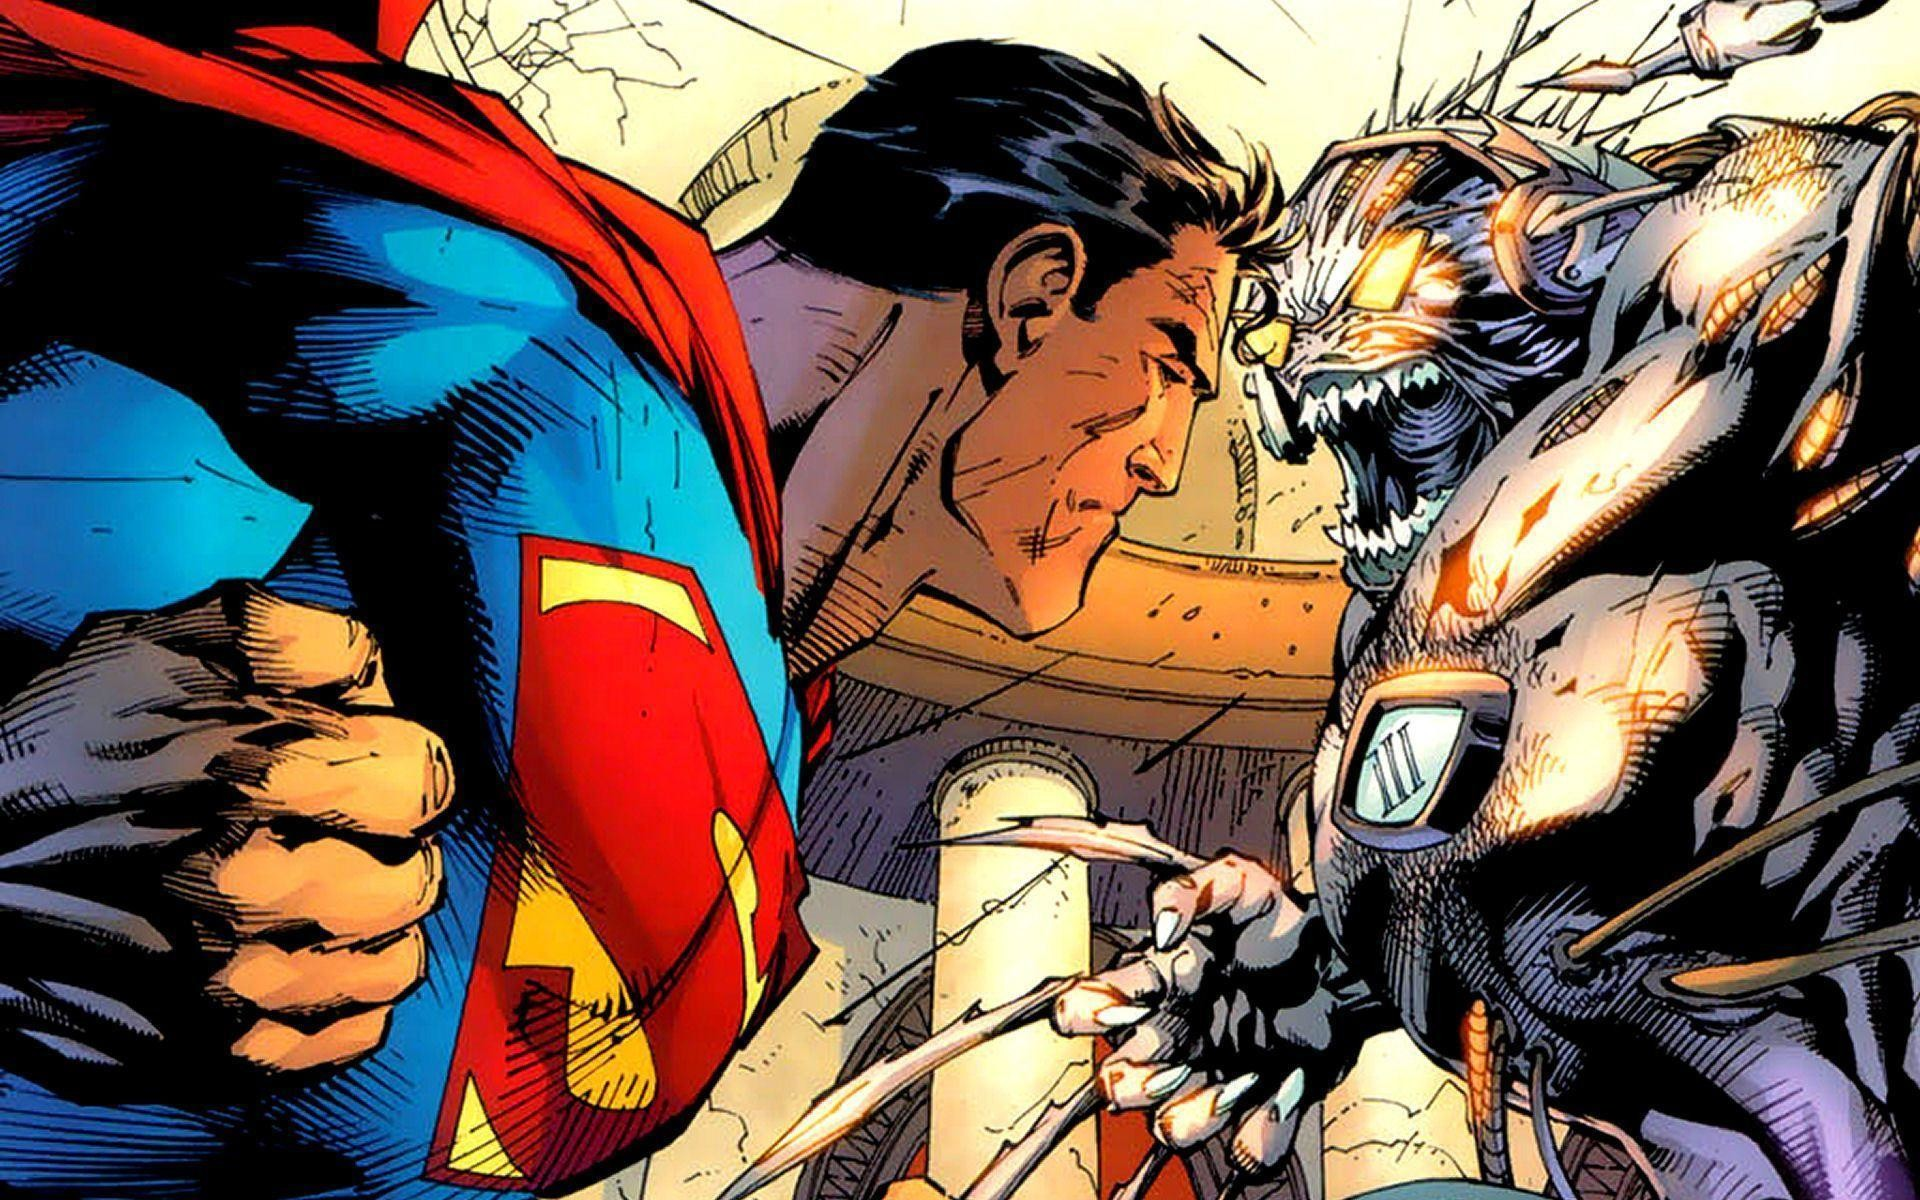 Res: 1920x1200, Doomsday to be in Snyder's Batman vs. Superman?